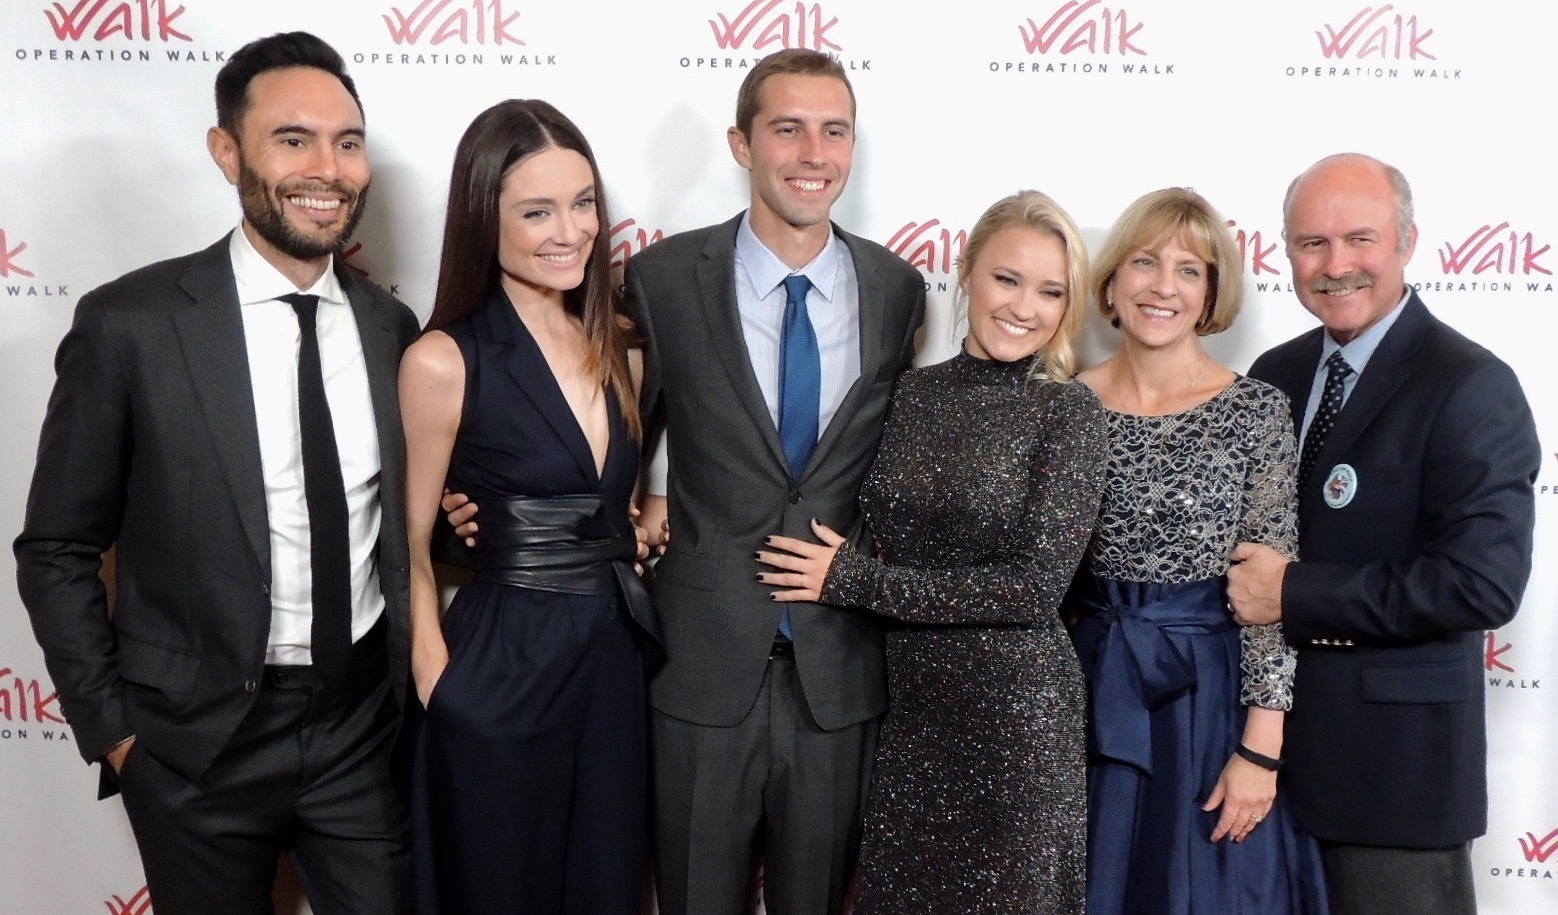 Gilbert Family with Emily Osment and Mallory Jansen